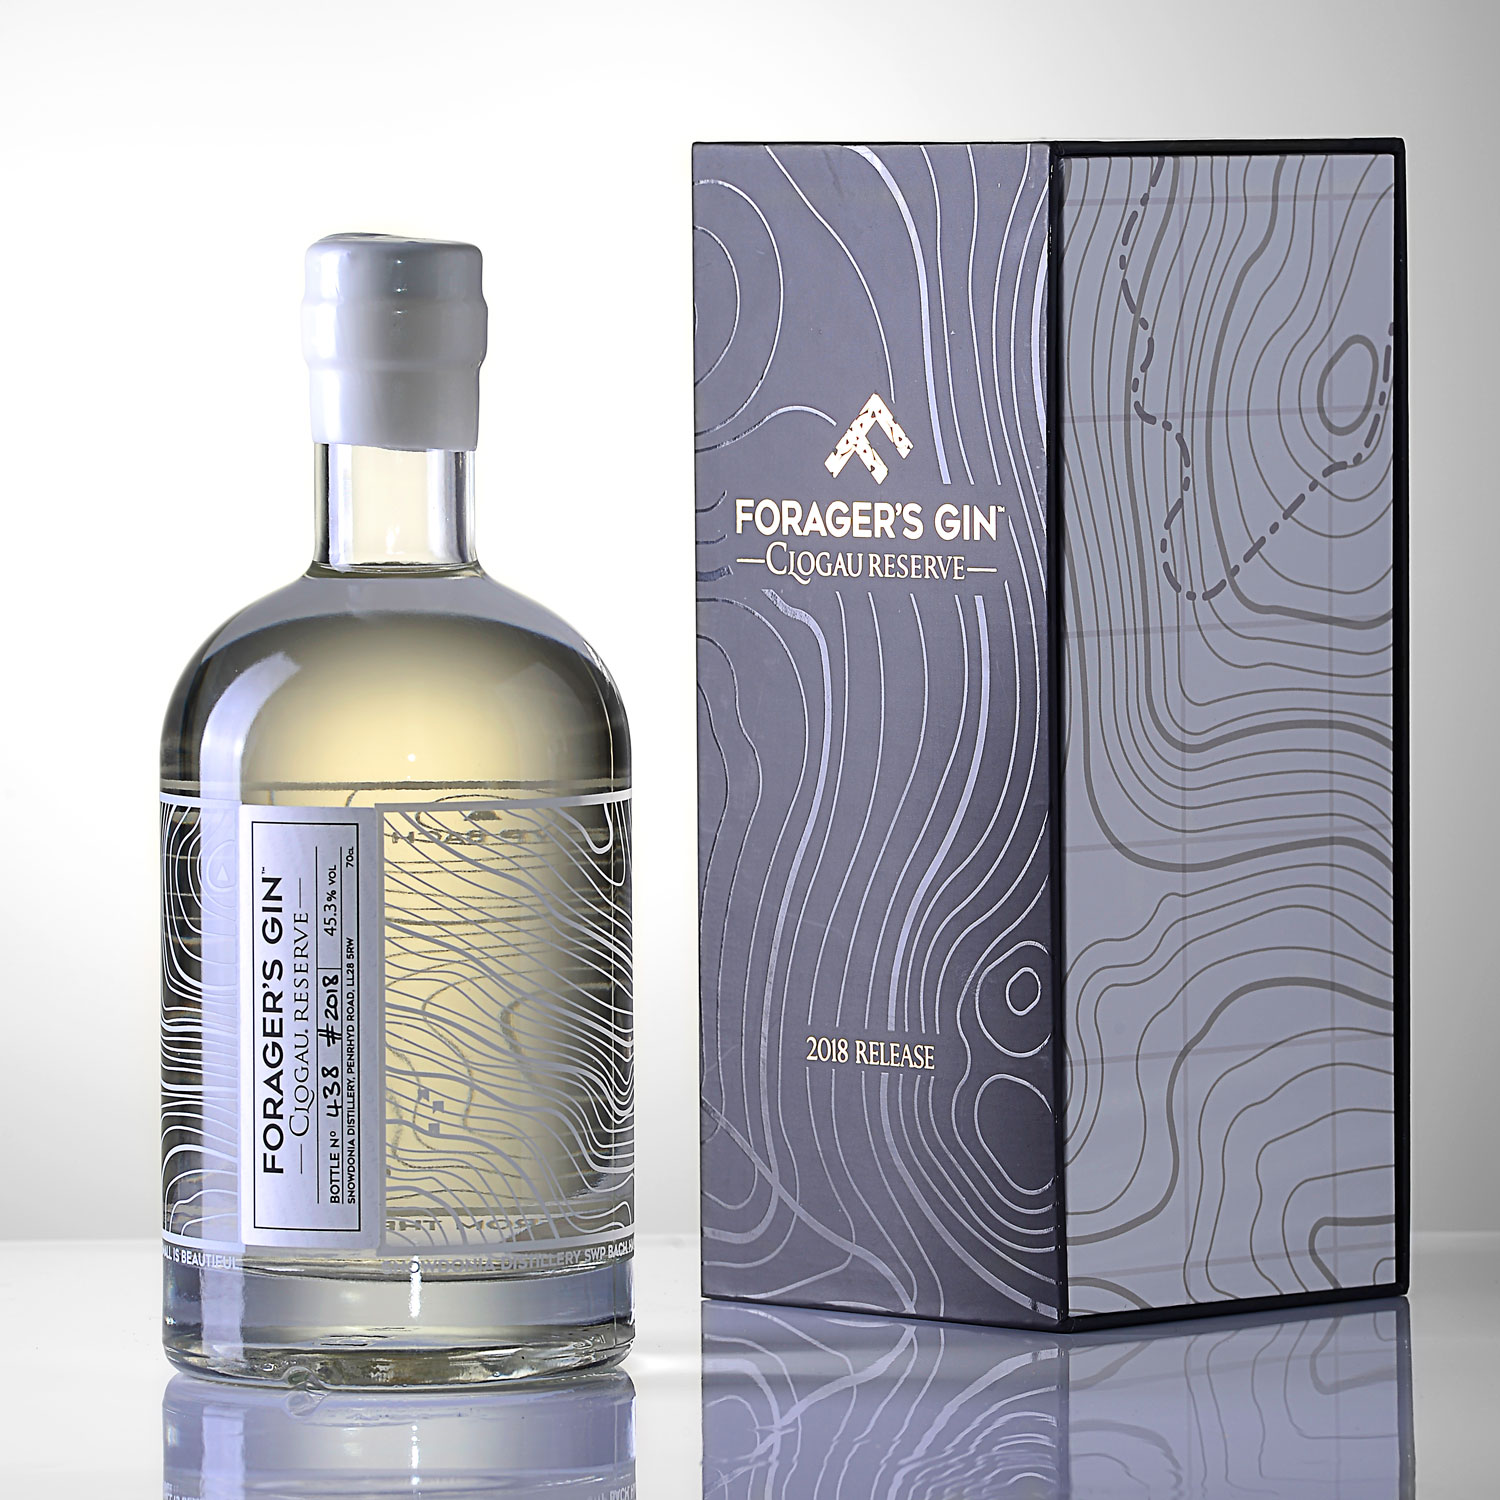 Progress Packaging Gin Alcohol Bespoke Luxury Special Occasion Royal Commemorative Foragers